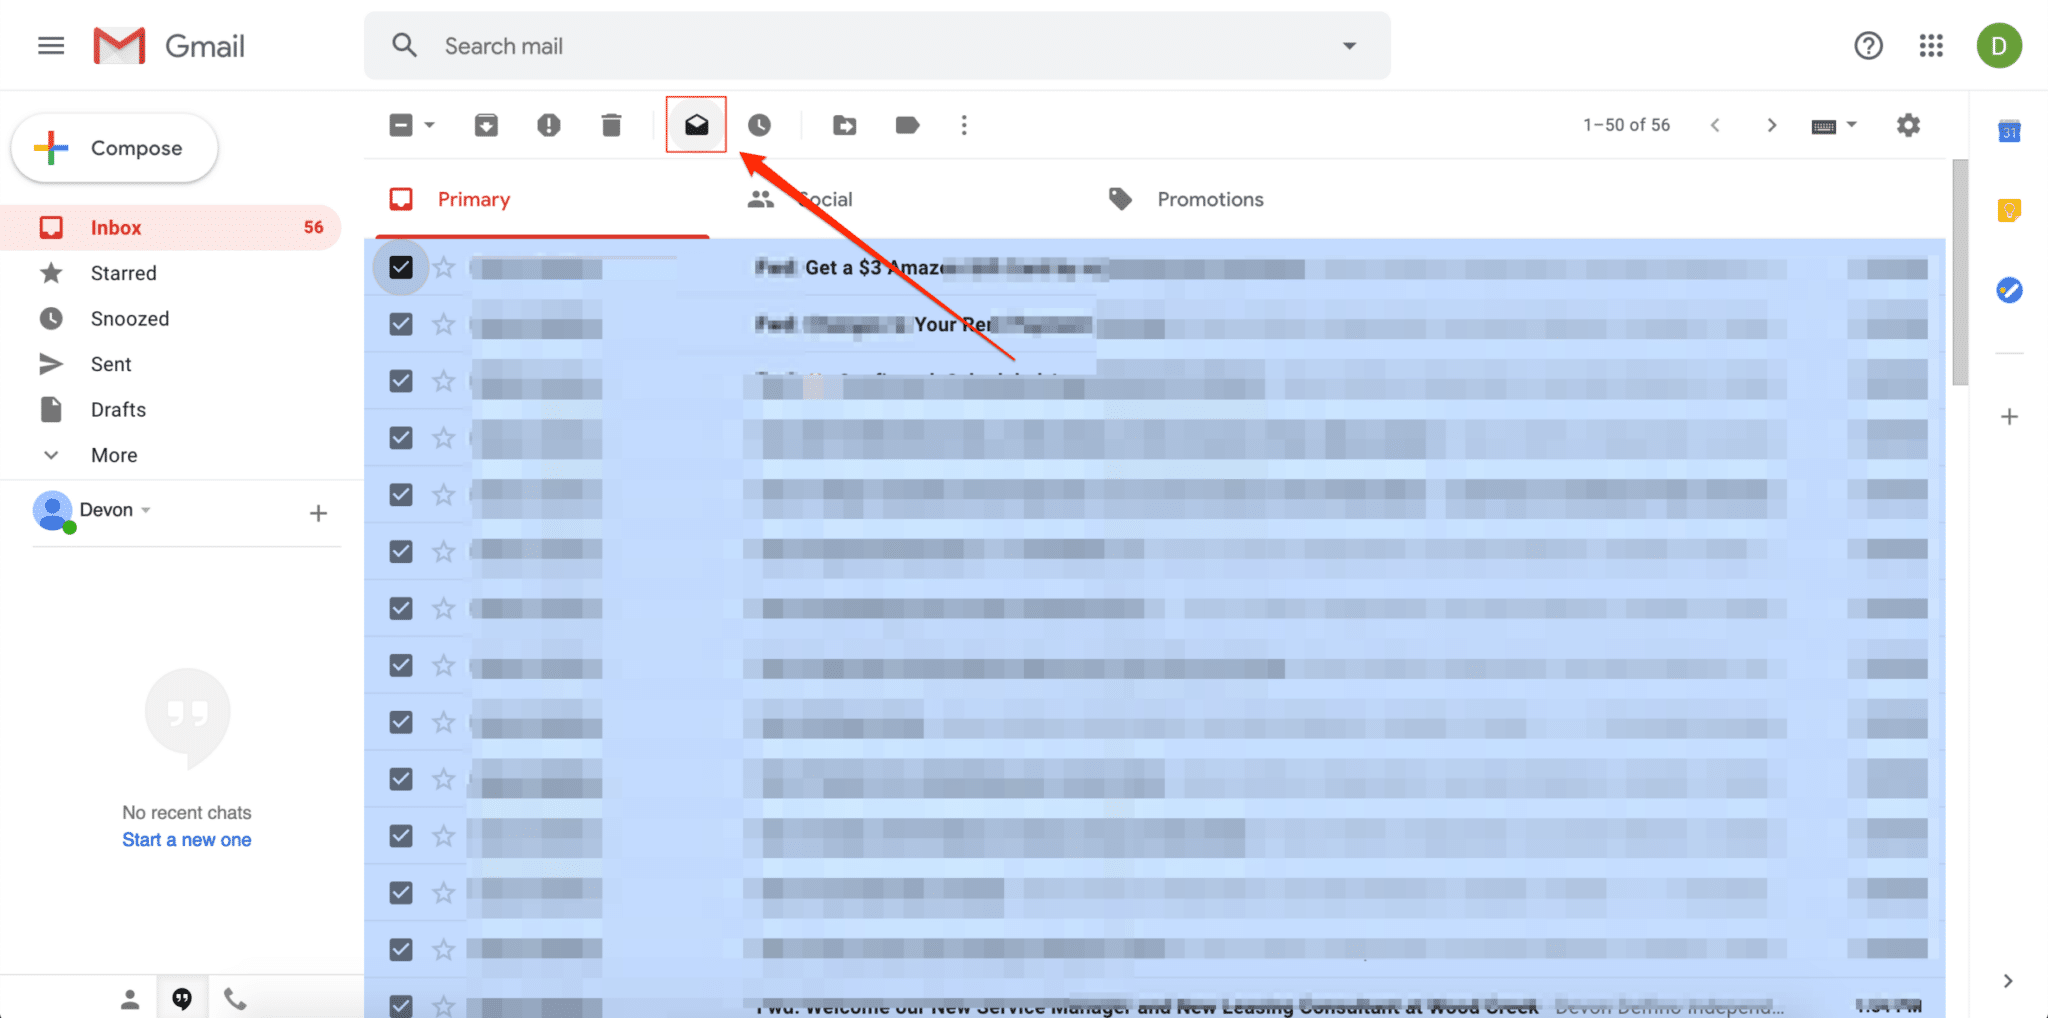 how to mark all emails as read